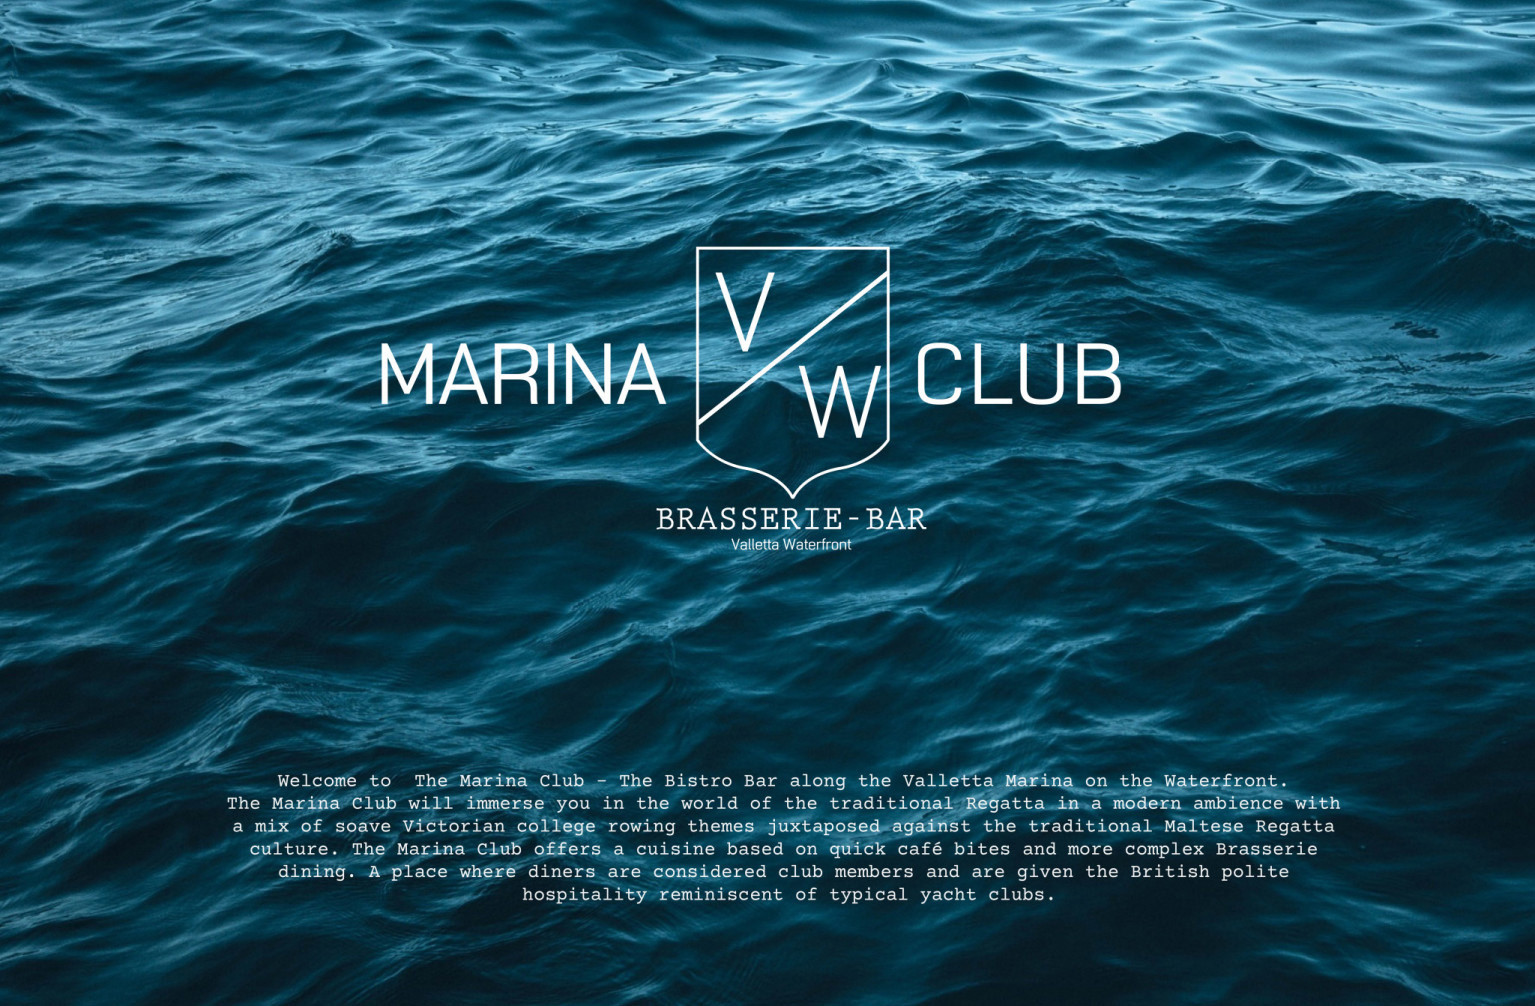 marina-vw-club-branding-3-copia